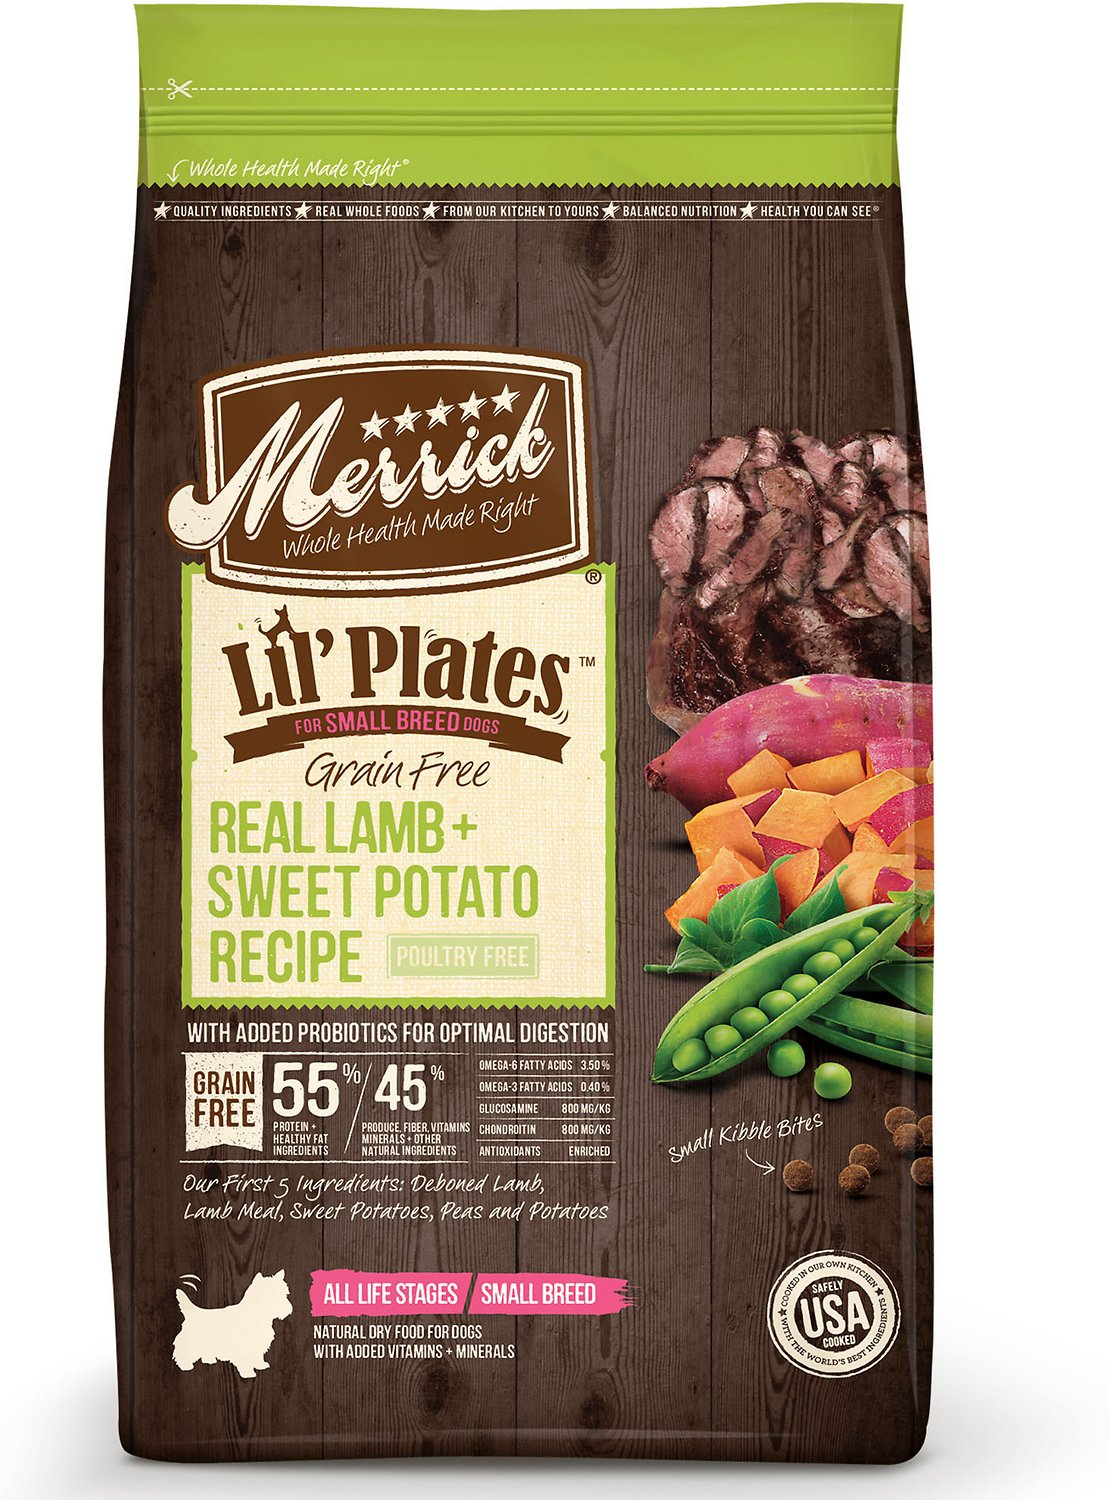 Merrick Lil' Plates Grain-Free Real Lamb & Sweet Potato Dry Dog Food Image